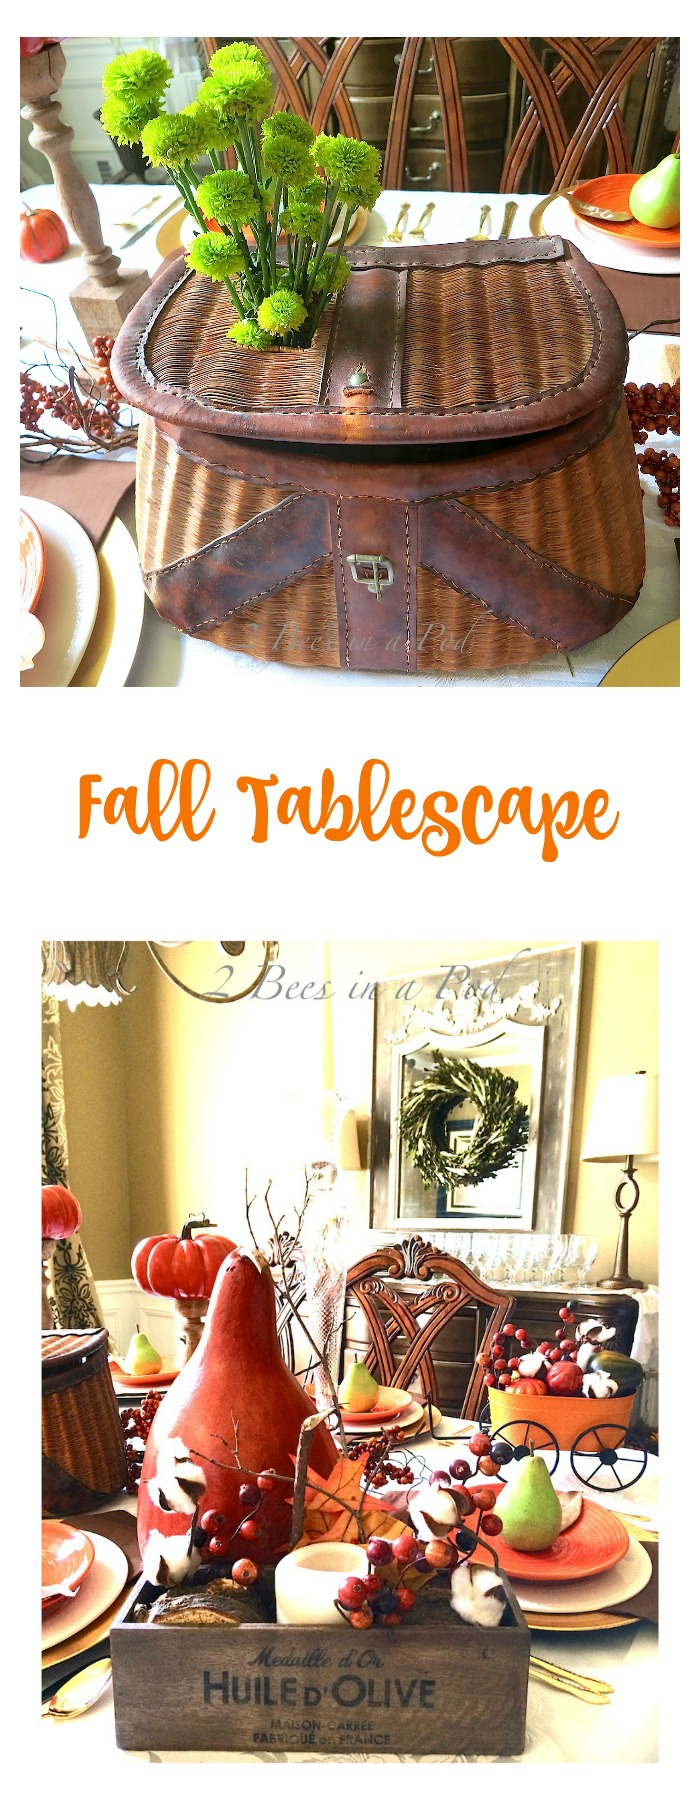 Fall tablescape. rustic Fall table with vintage decor.